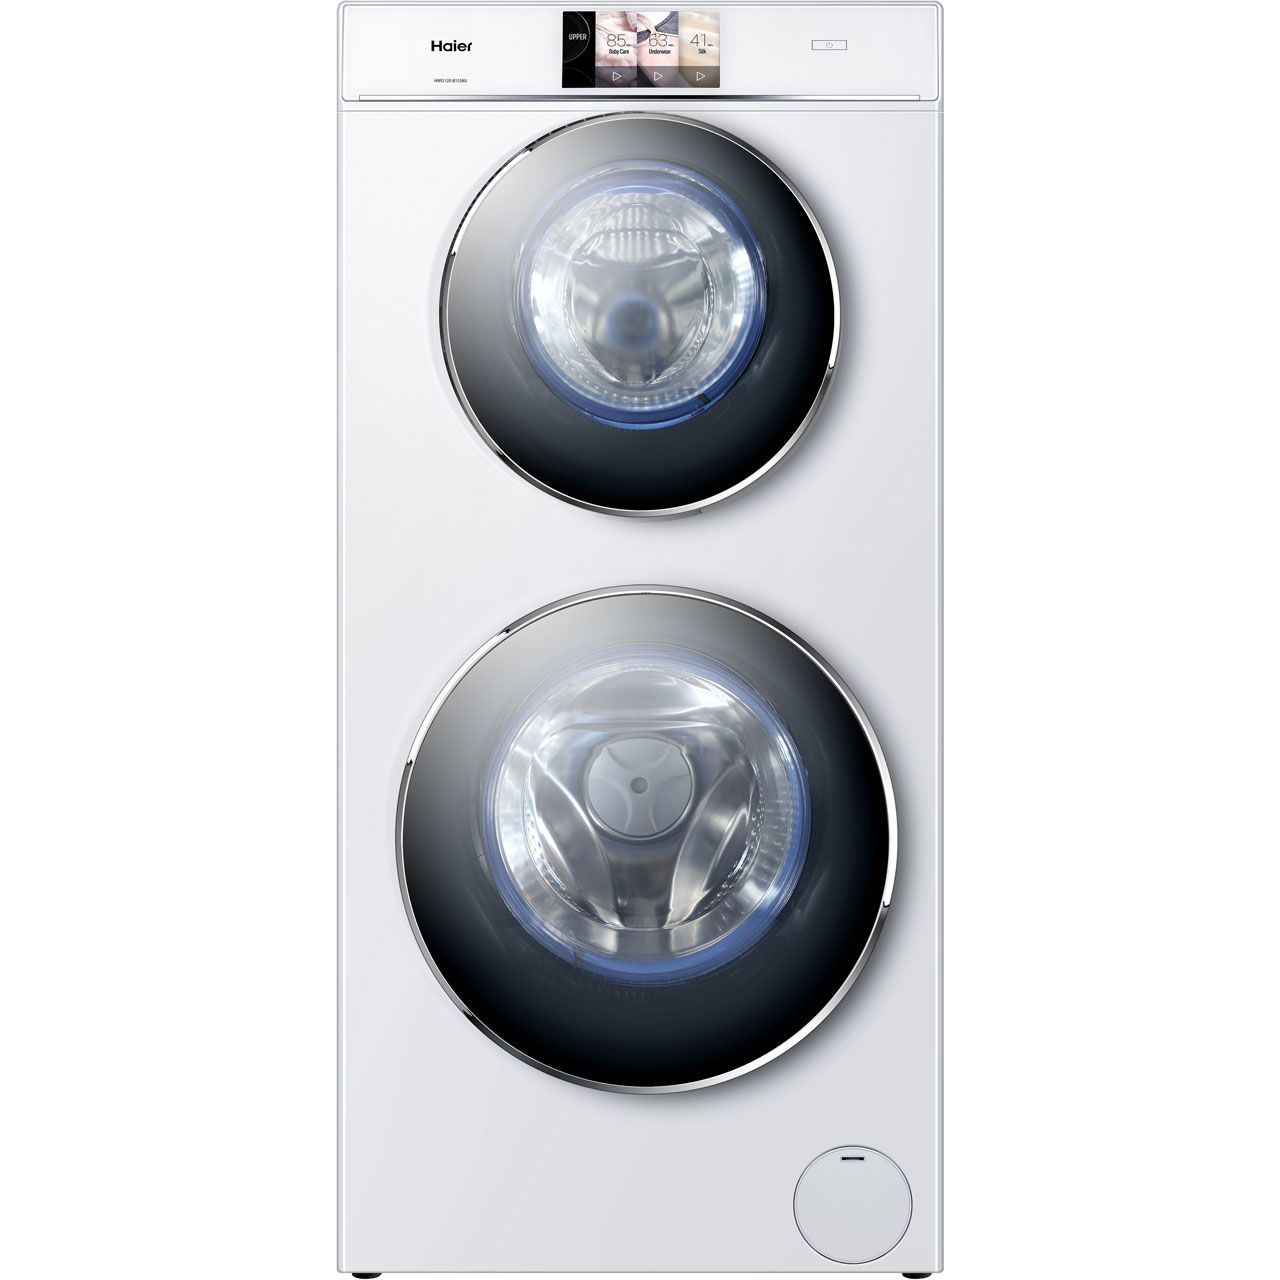 Haier Duo Hwd120 B1558u 12kg 4kg Washer Dryer With 1500 Rpm White A Rated Washer And Dryer Haier Washing Machine Haier Washer